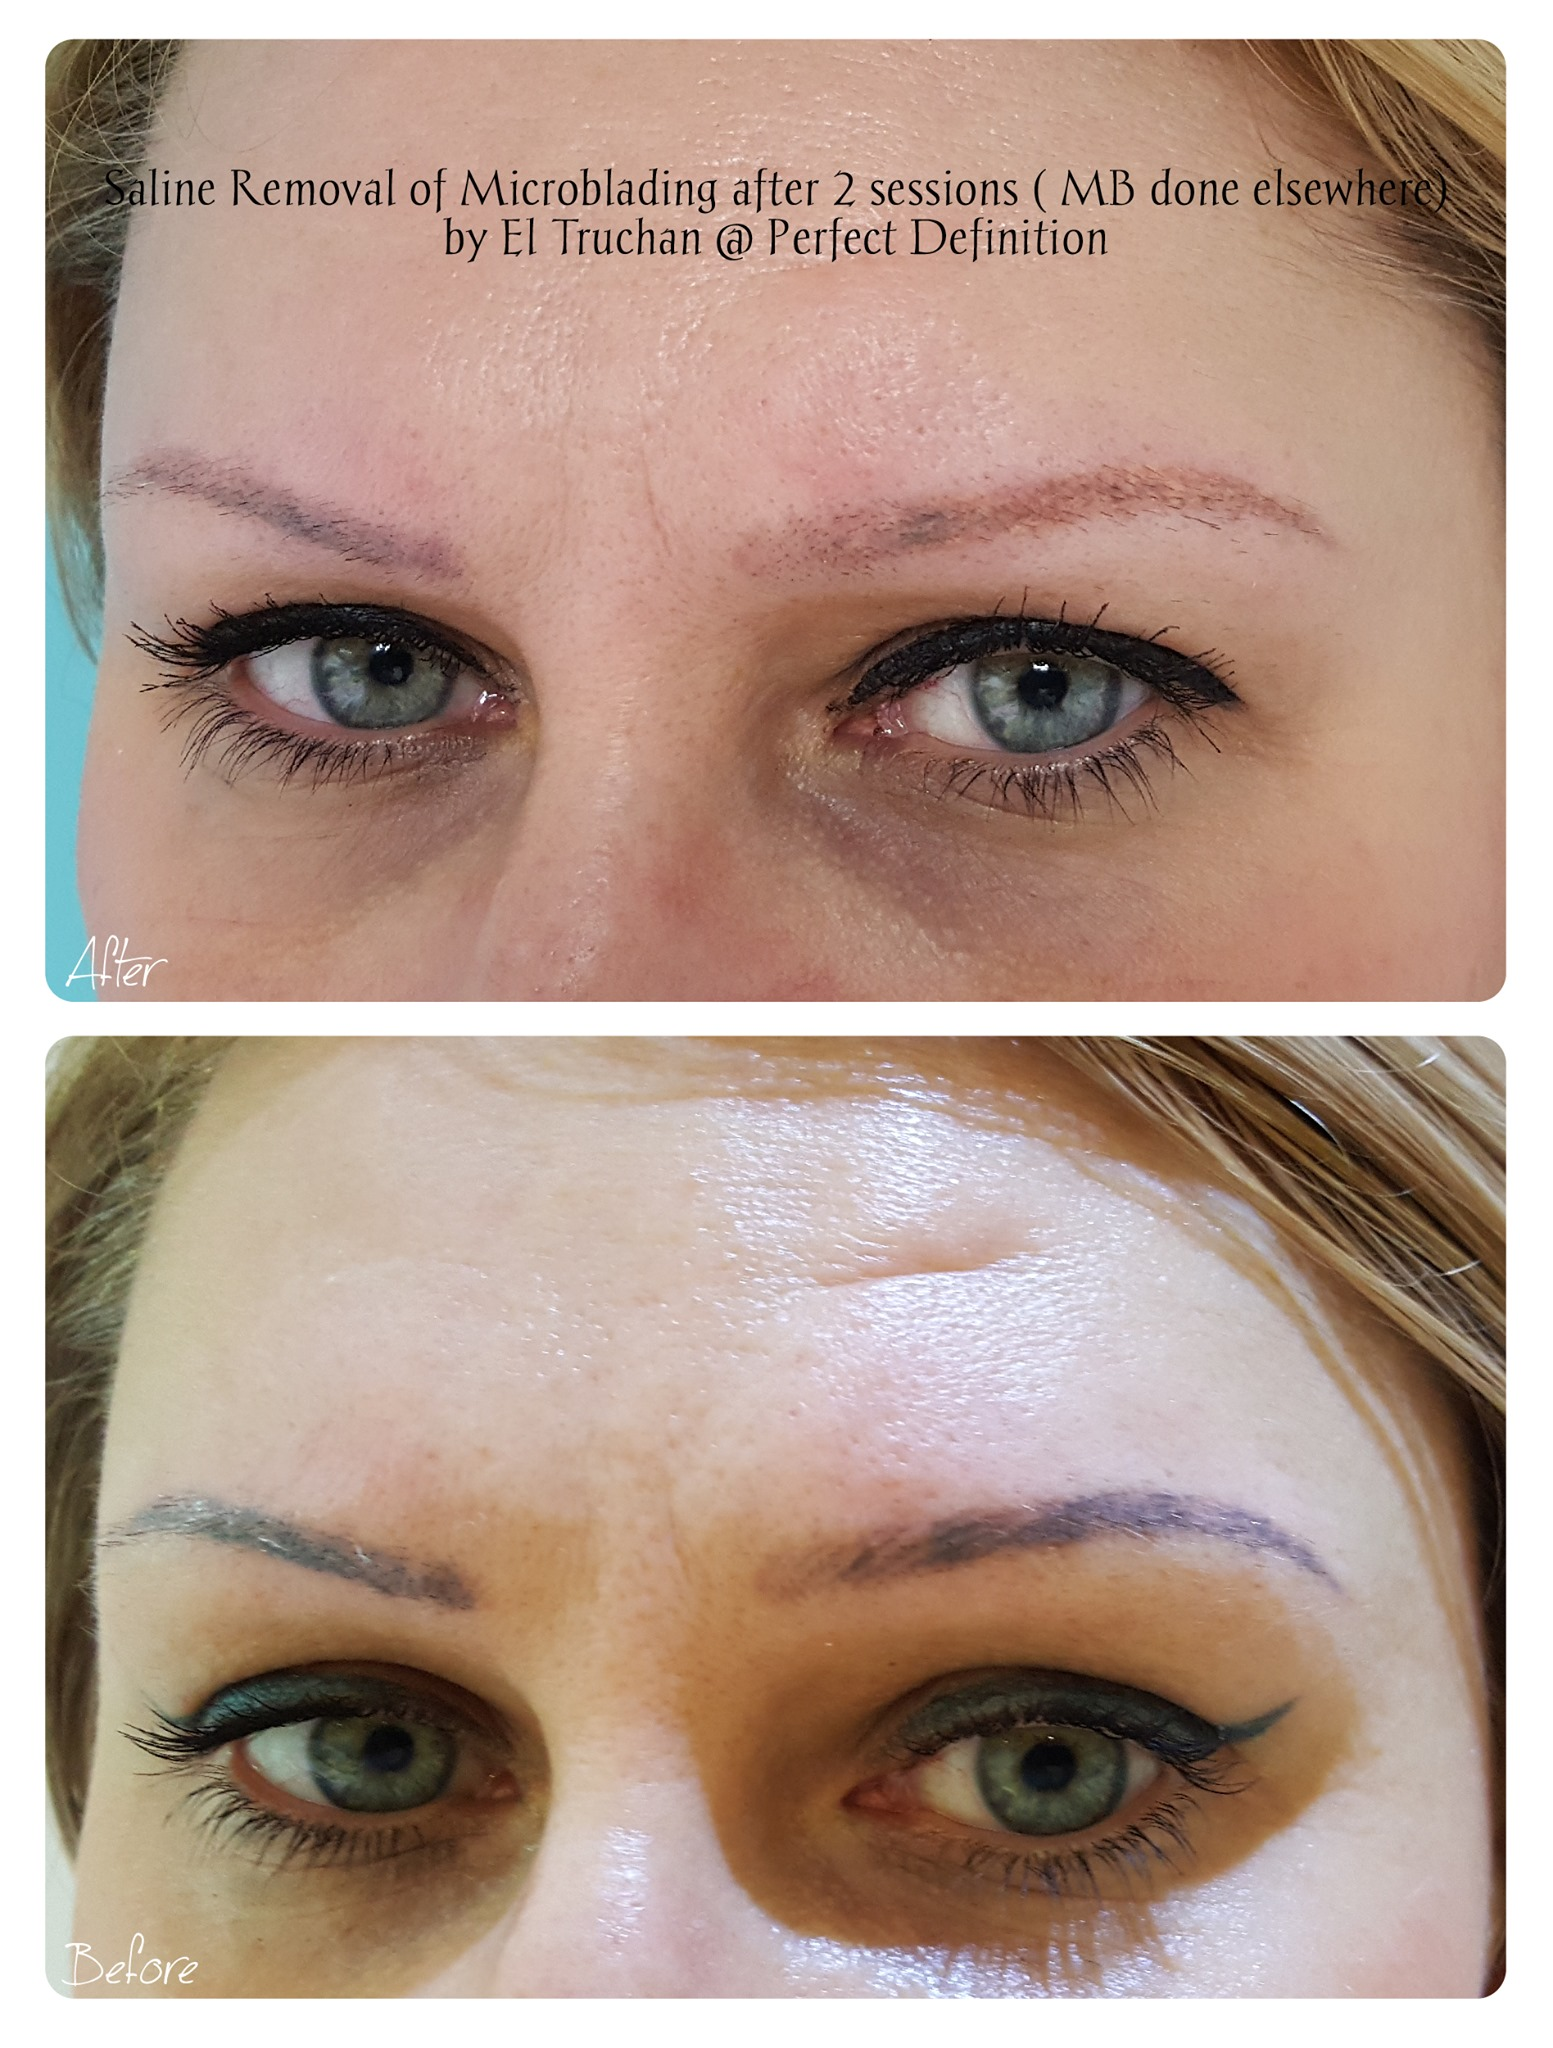 Saline Removal of Microblading after 2 s